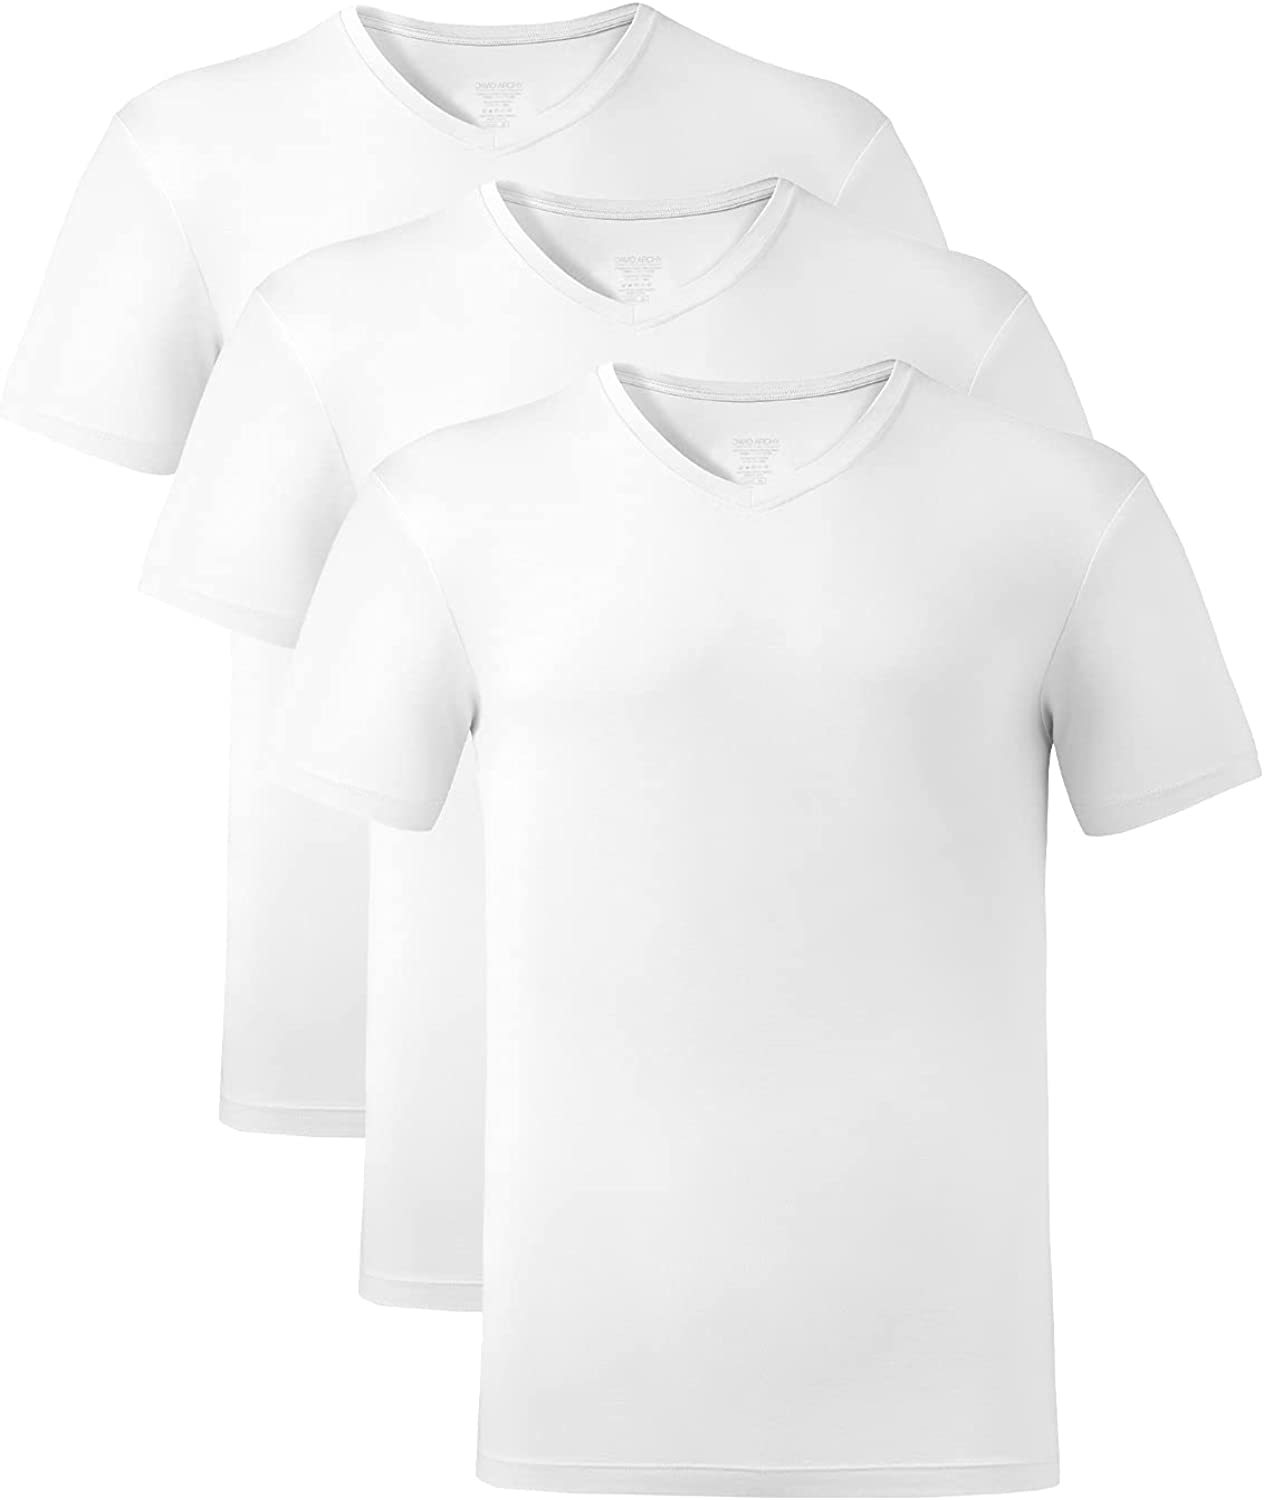 DAVID ARCHY Men's Undershirts Soft Bamboo Rayon V-Neck Breathable T-Shirts in 2 or 3 Pack